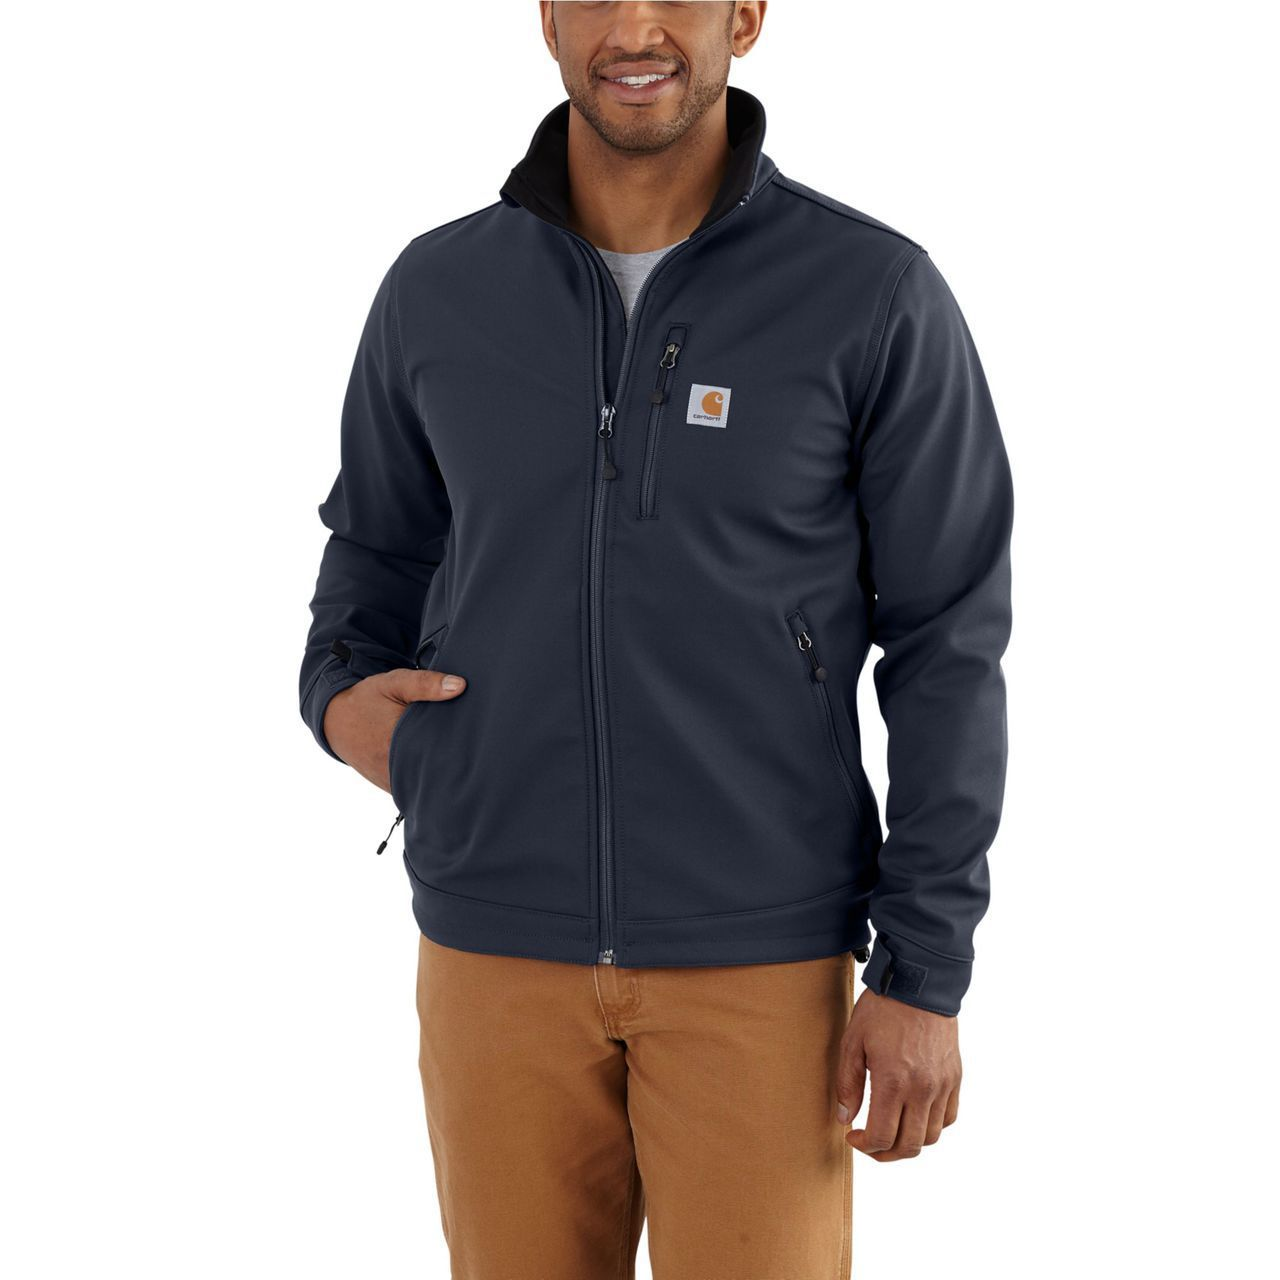 NEW Crowley Jacket - The Brown Duck